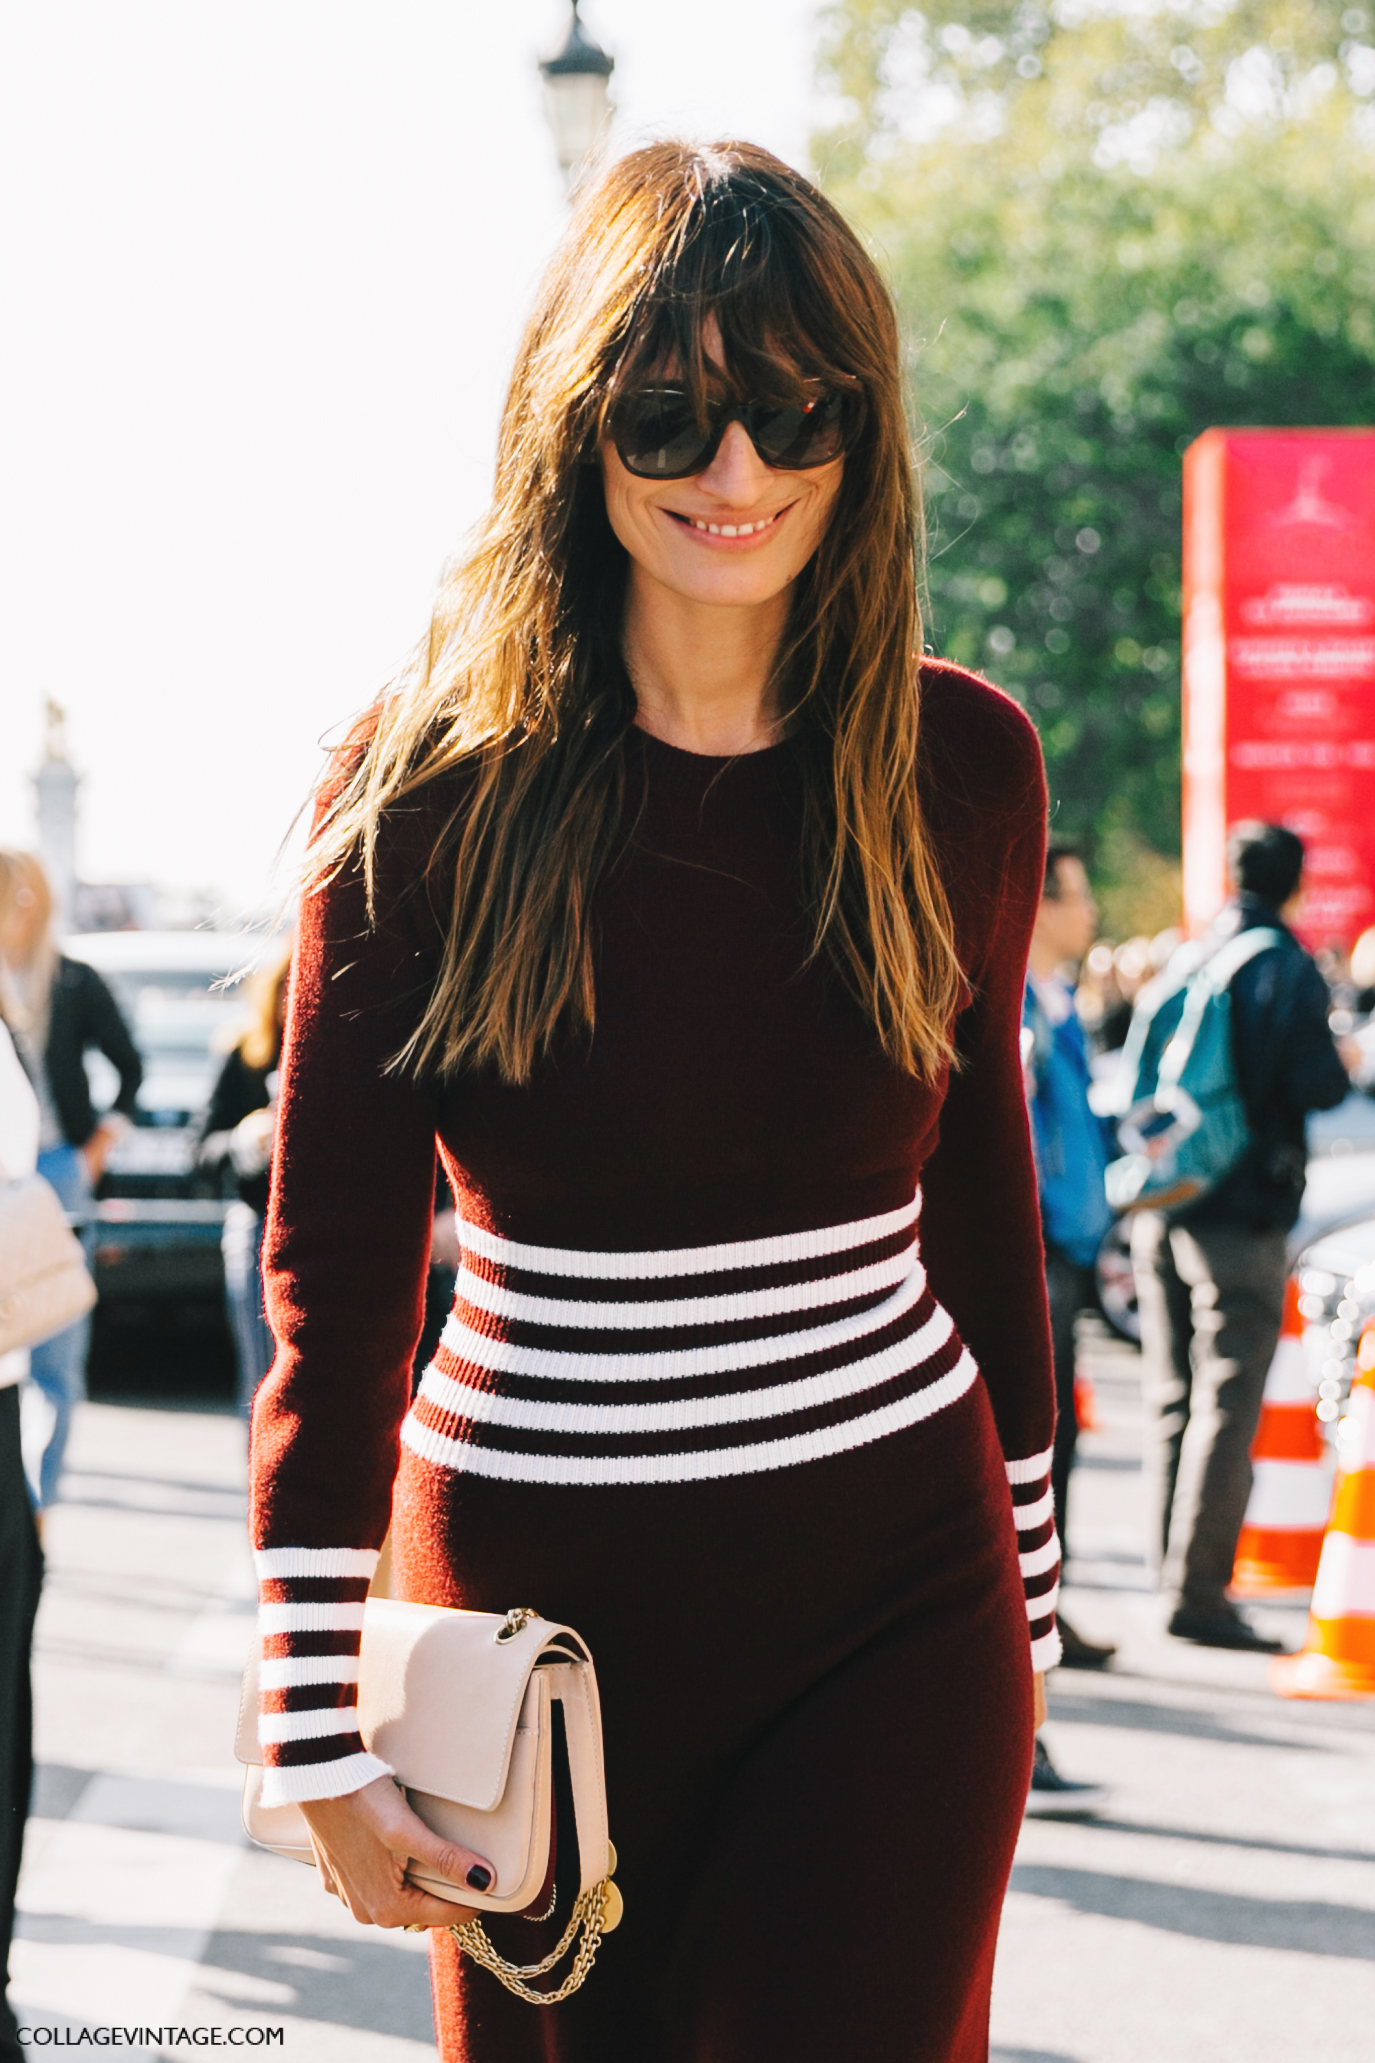 pfw-paris_fashion_week_ss17-street_style-outfits-collage_vintage-chanel-ellery-59